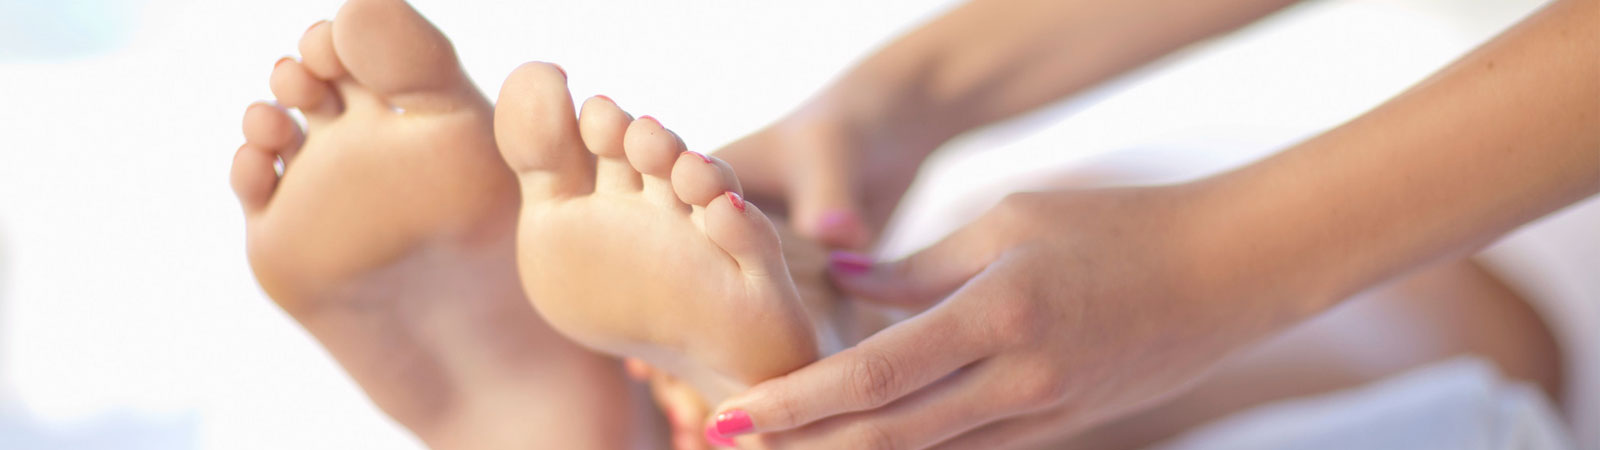 Double Bay Podiatry Centre